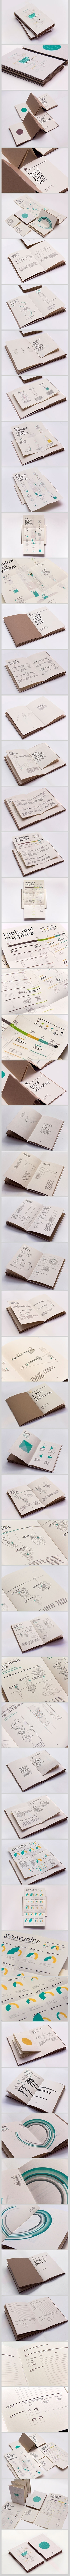 Window Farms: Information Design Book by Jiani Lu on Béhance | LAYOUT #information #design #book #layout #editorial